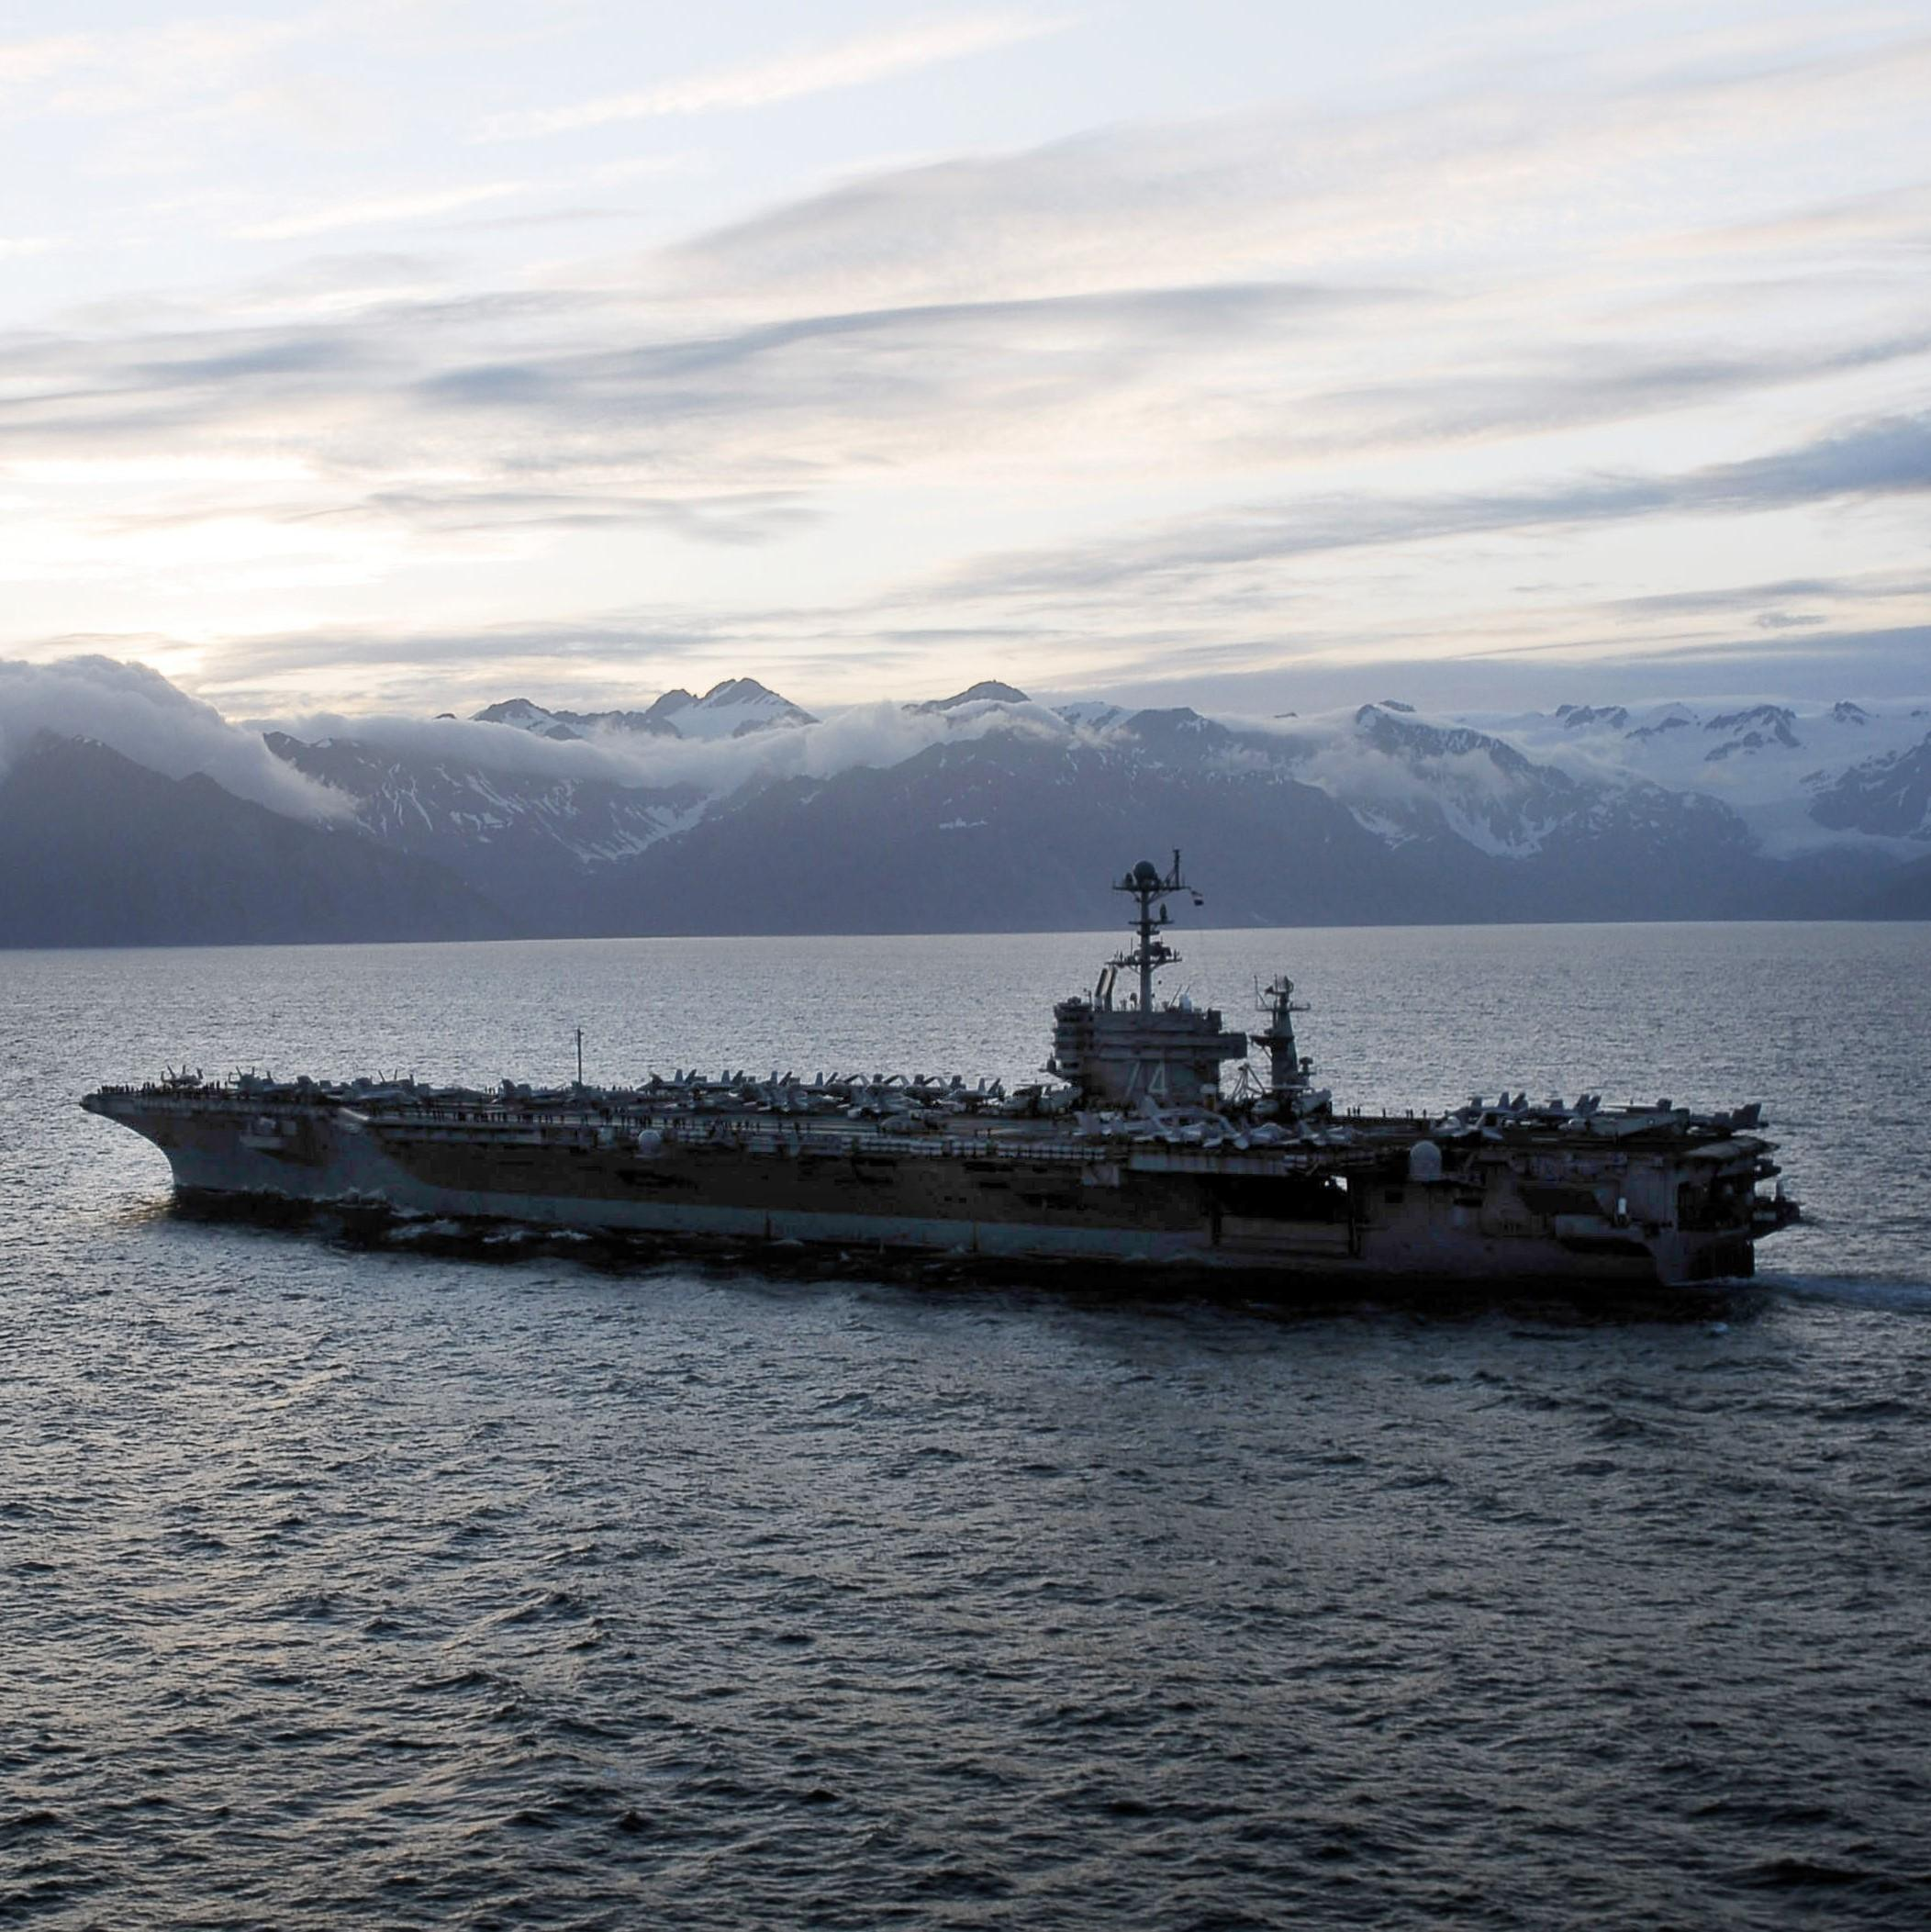 Northern Edge military training exercise in the Gulf of Alaska. (Photo courtesy of U.S. Navy)